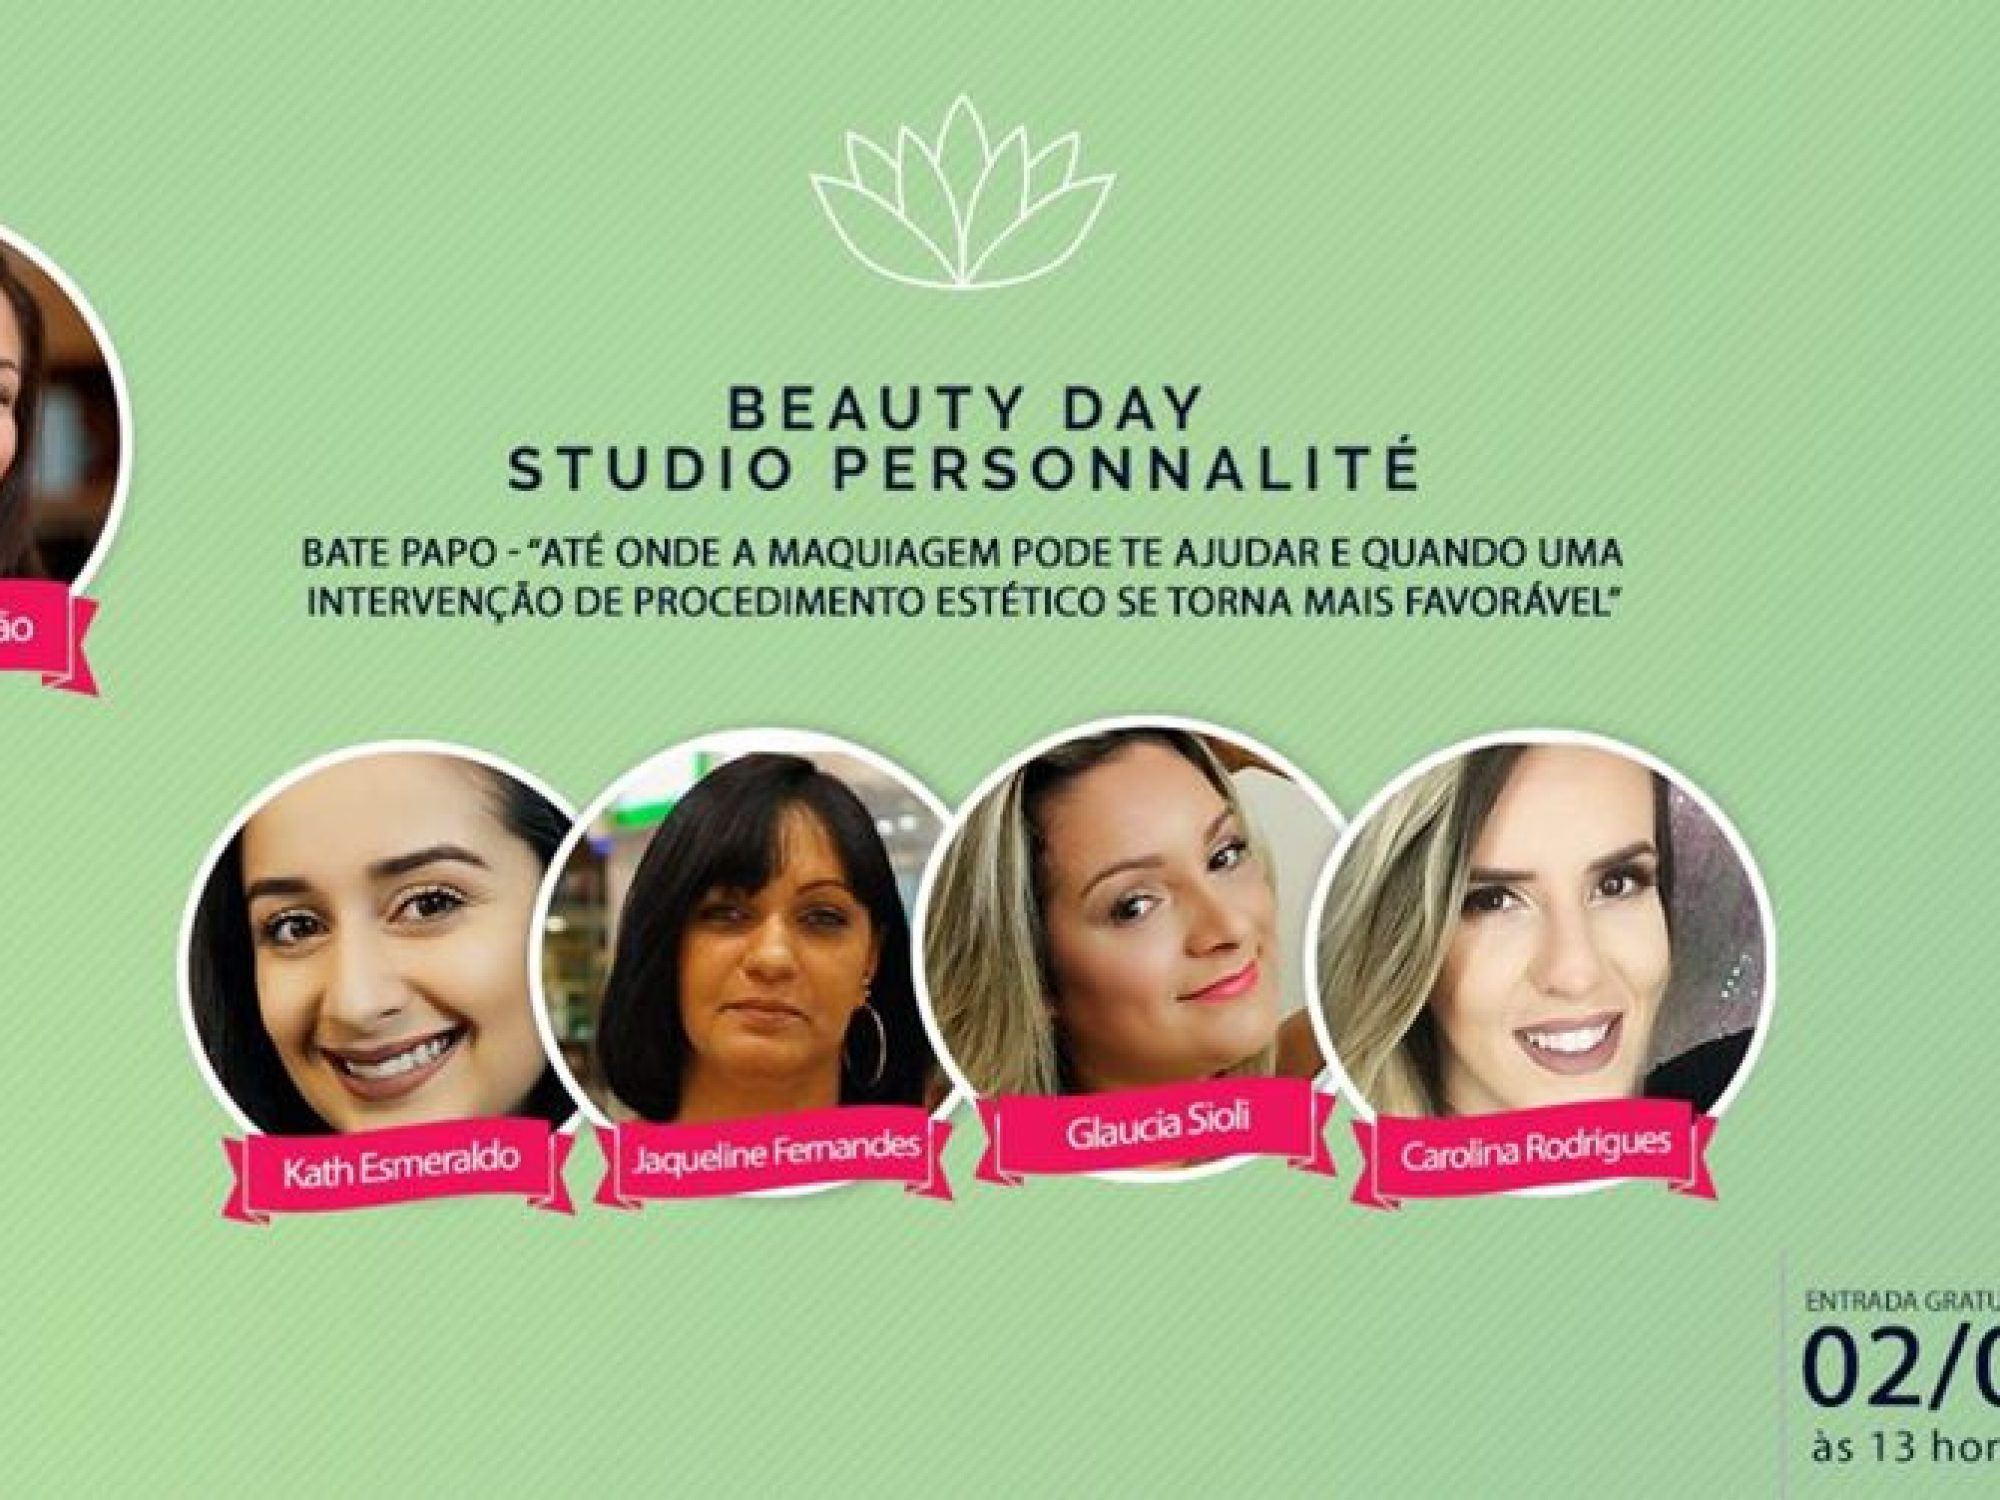 Beauty Day do Studio Personnalité